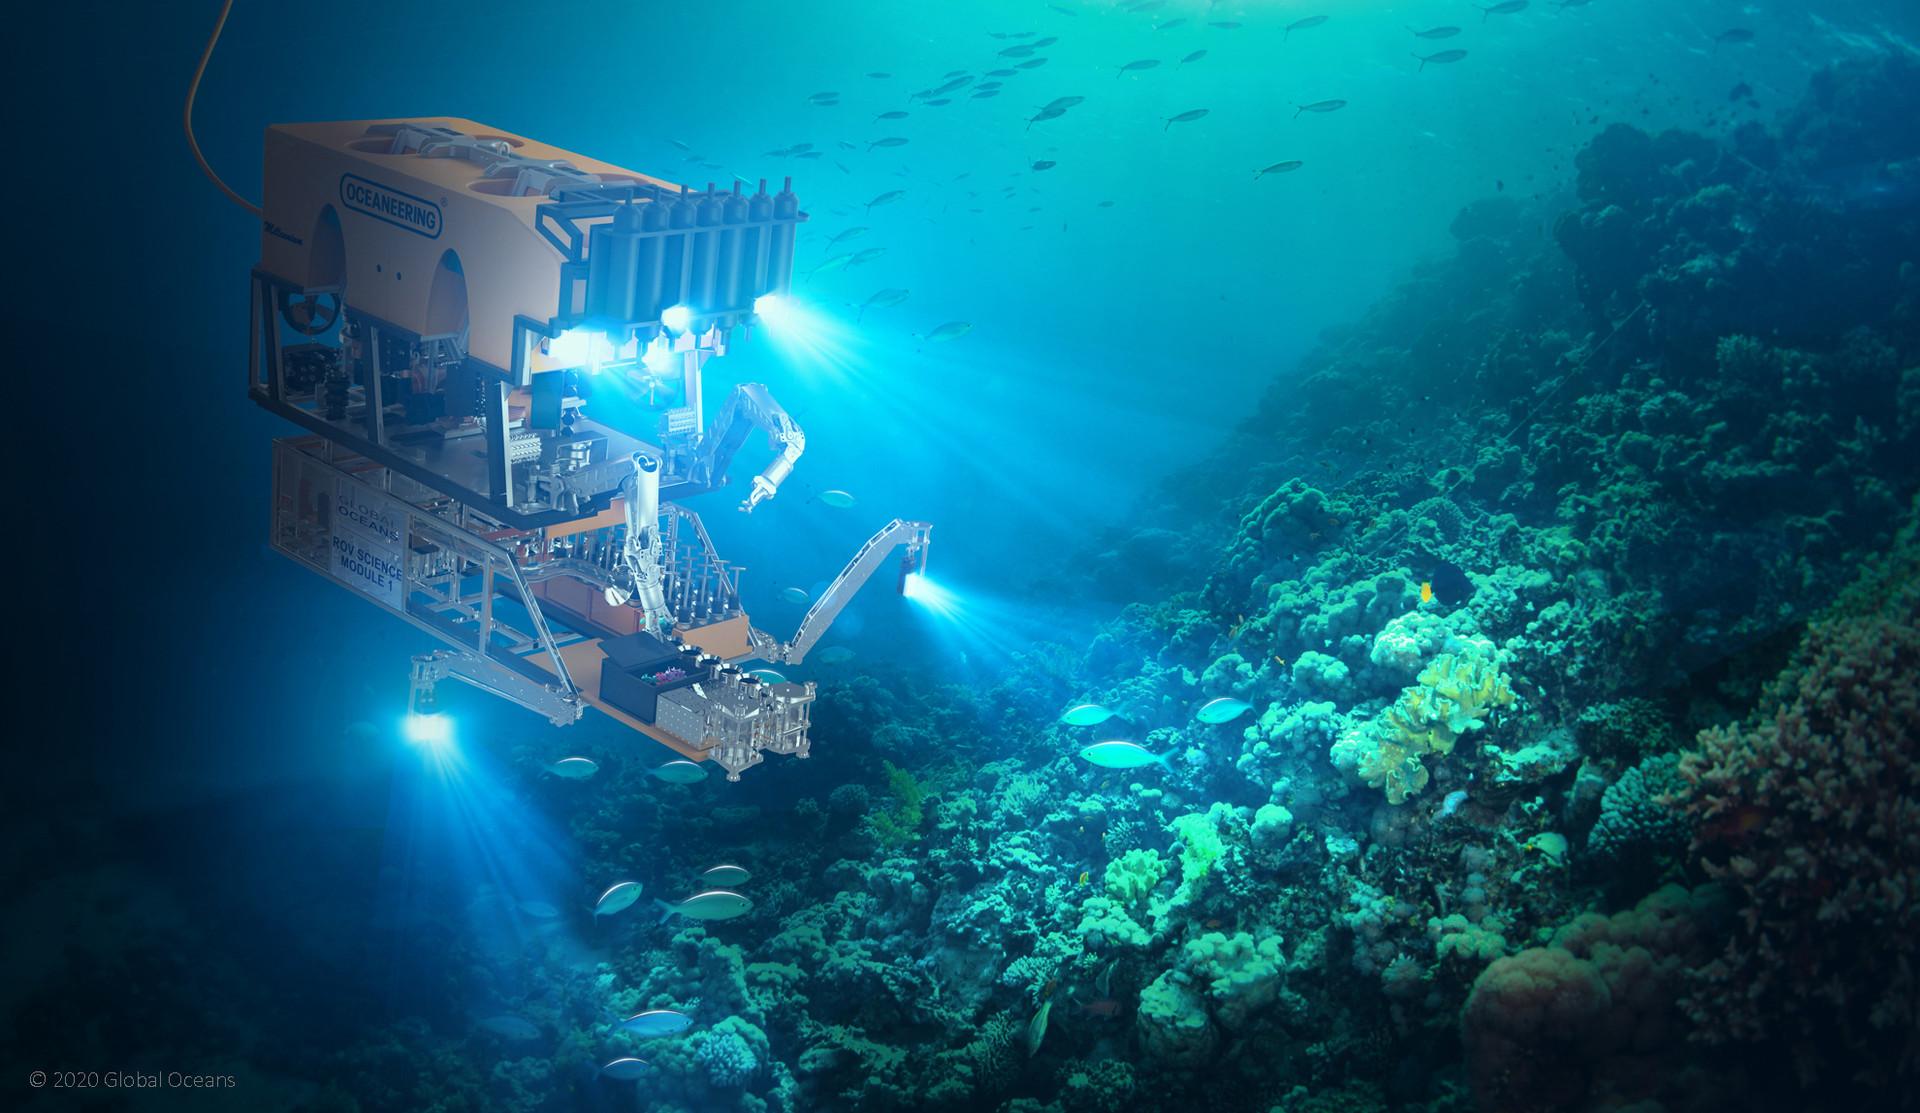 Figure 5: Global Oceans ROV Science Module attached to an Oceaneering Millennium Plus® ROV.